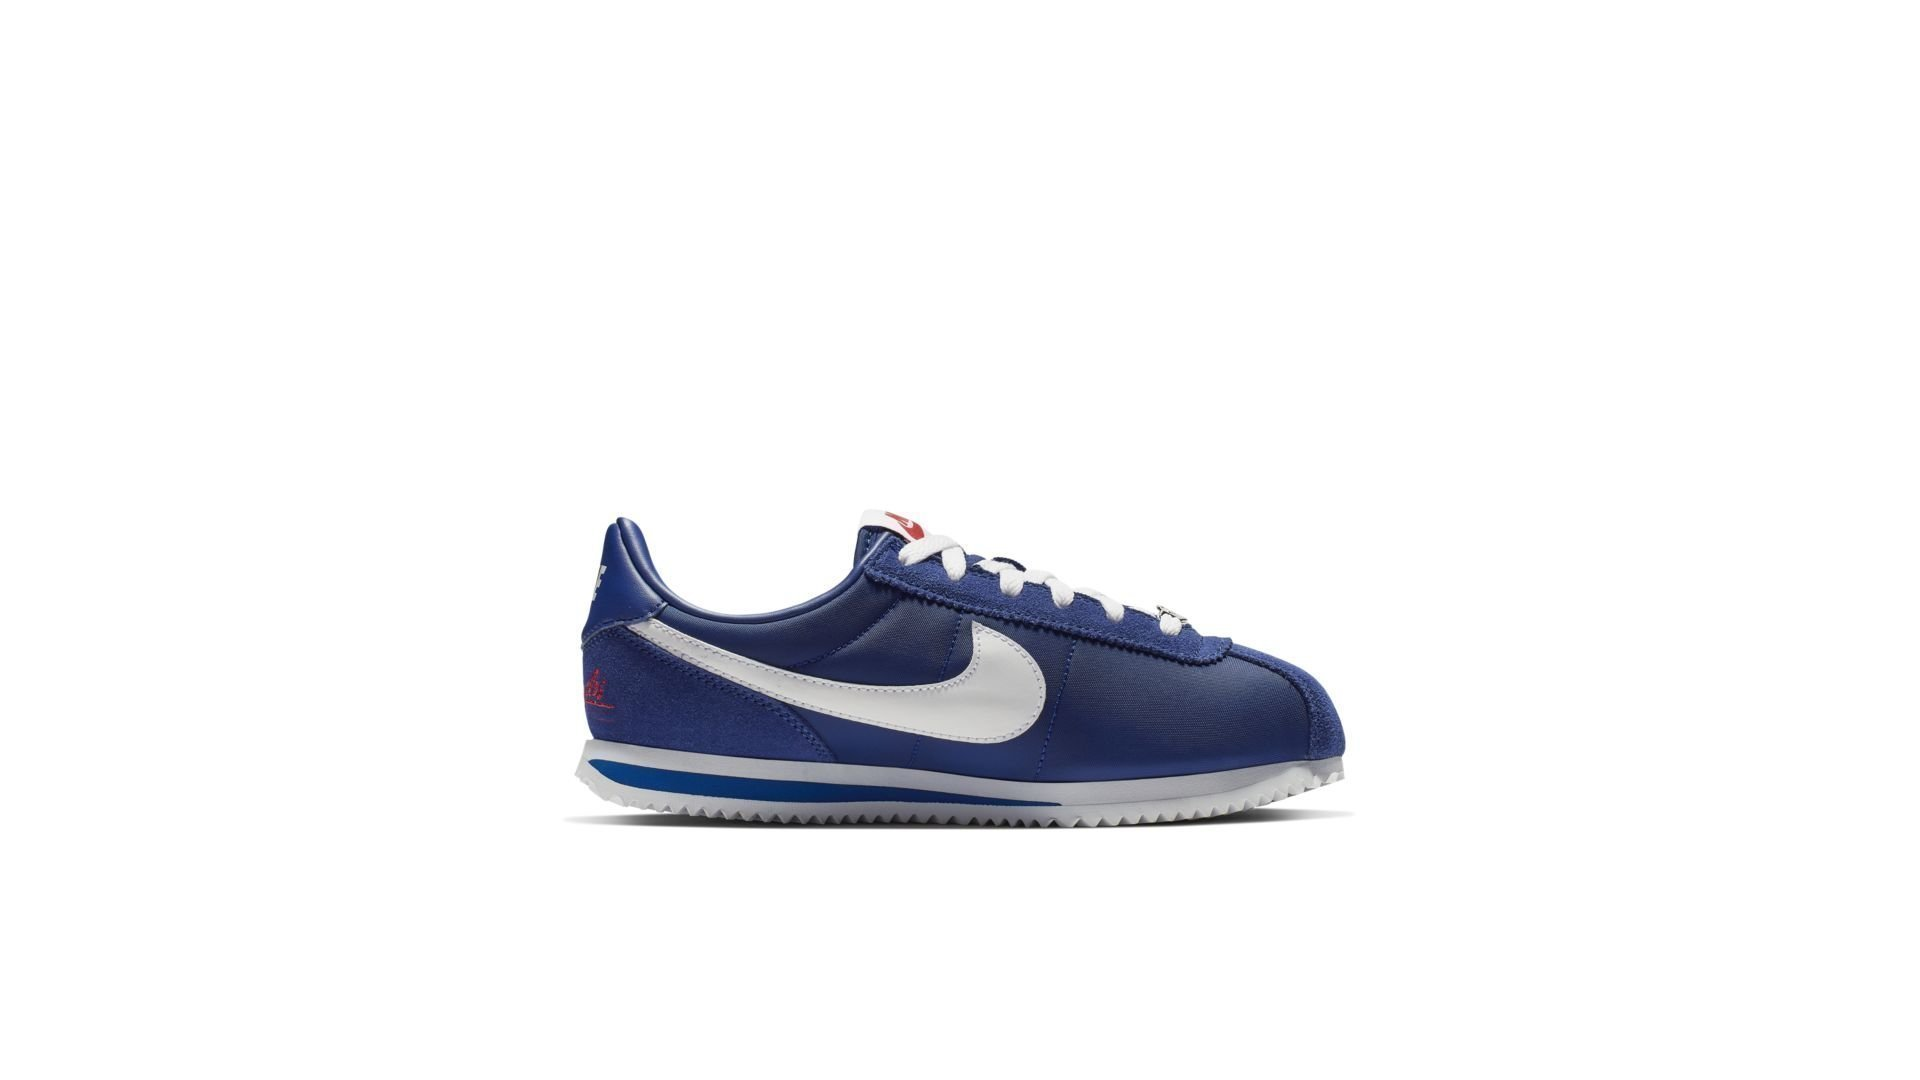 Nike Cortez Los Angeles Blue (GS) (CI9957-400)